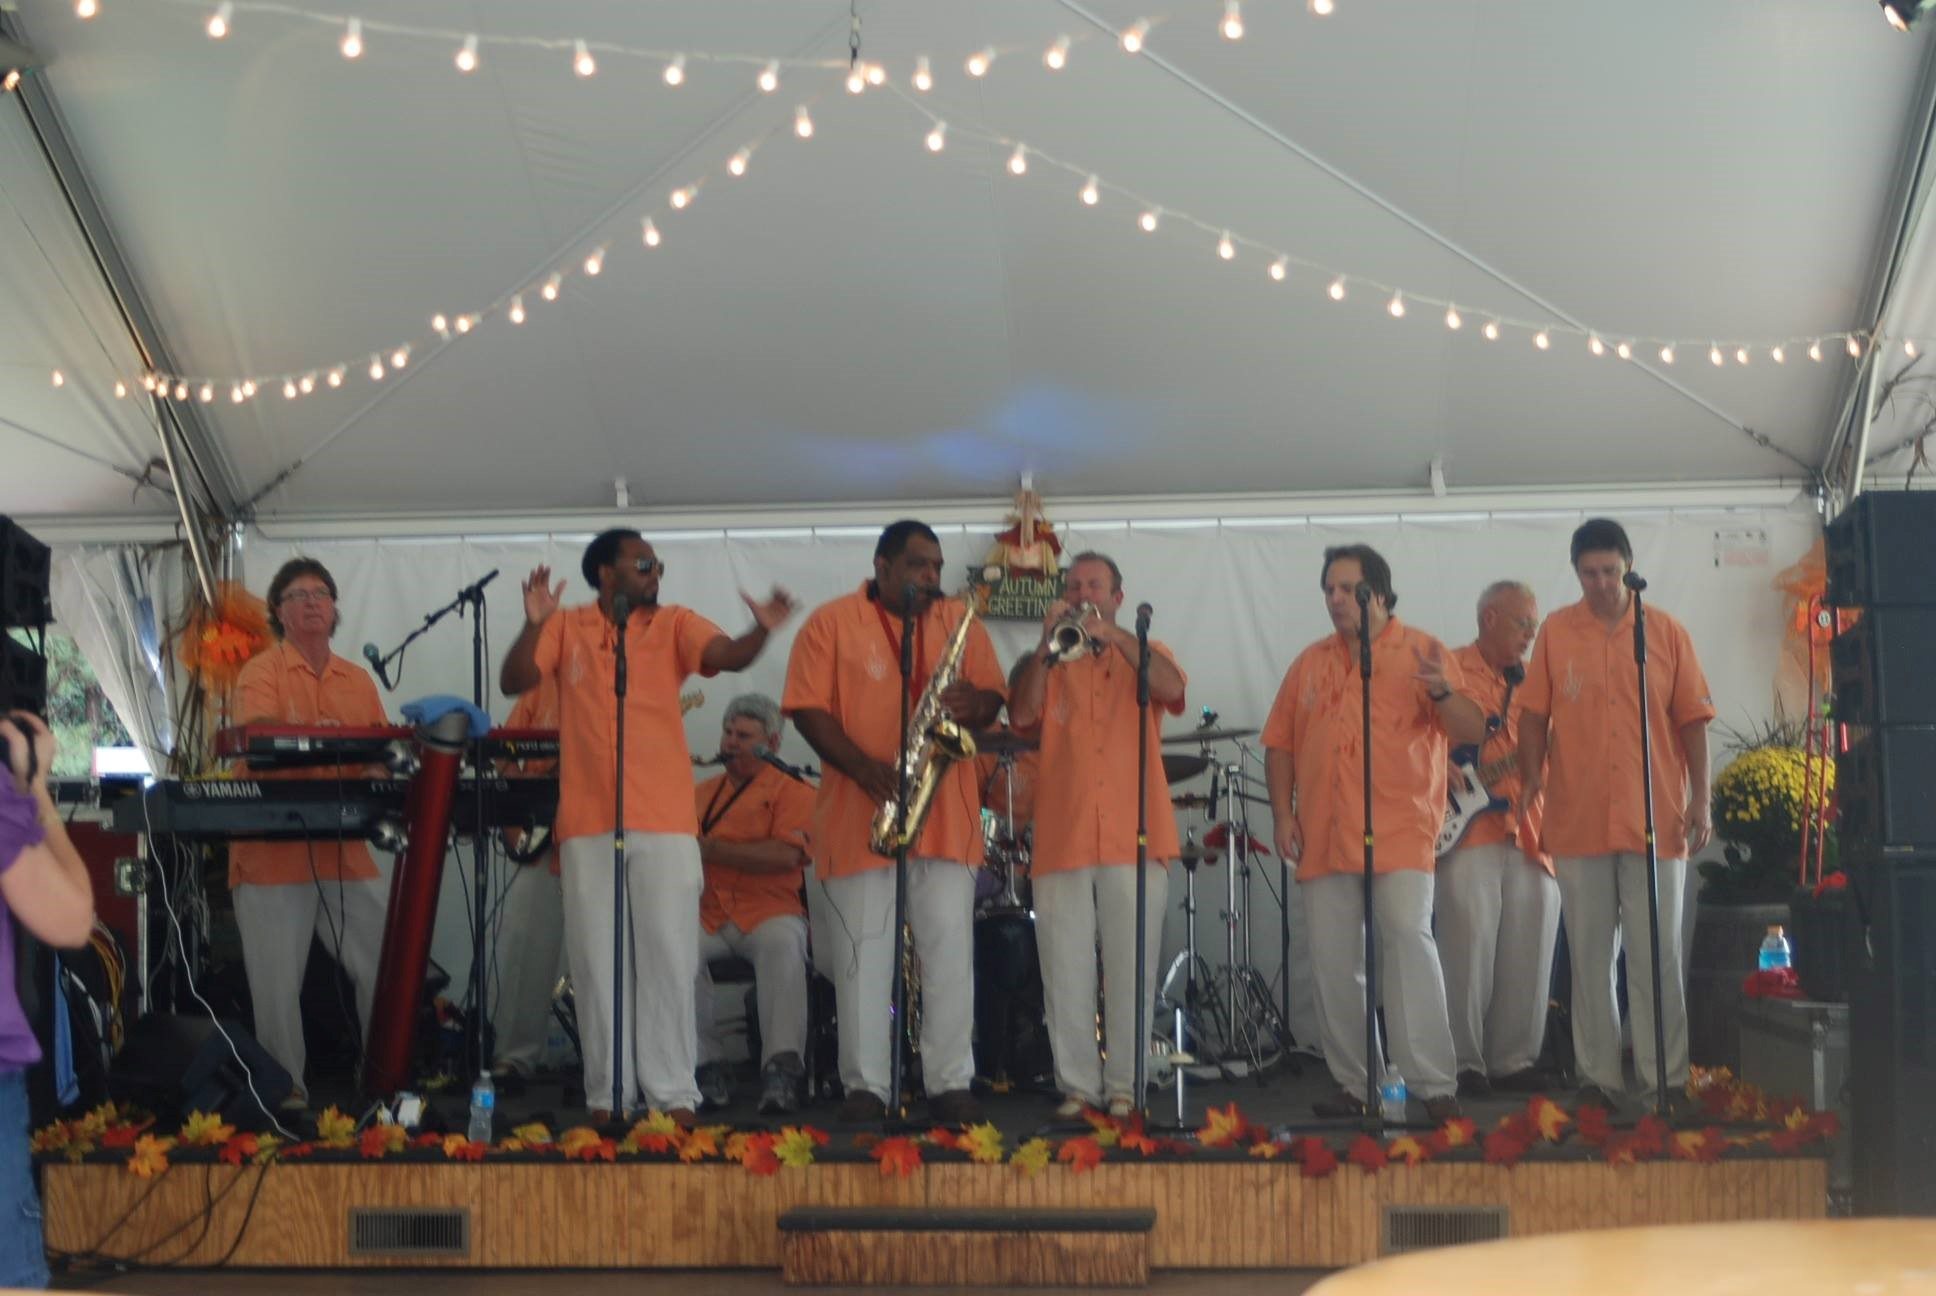 10th Annual Harvest Festival Band BlackWater Rhythm & Blue Band